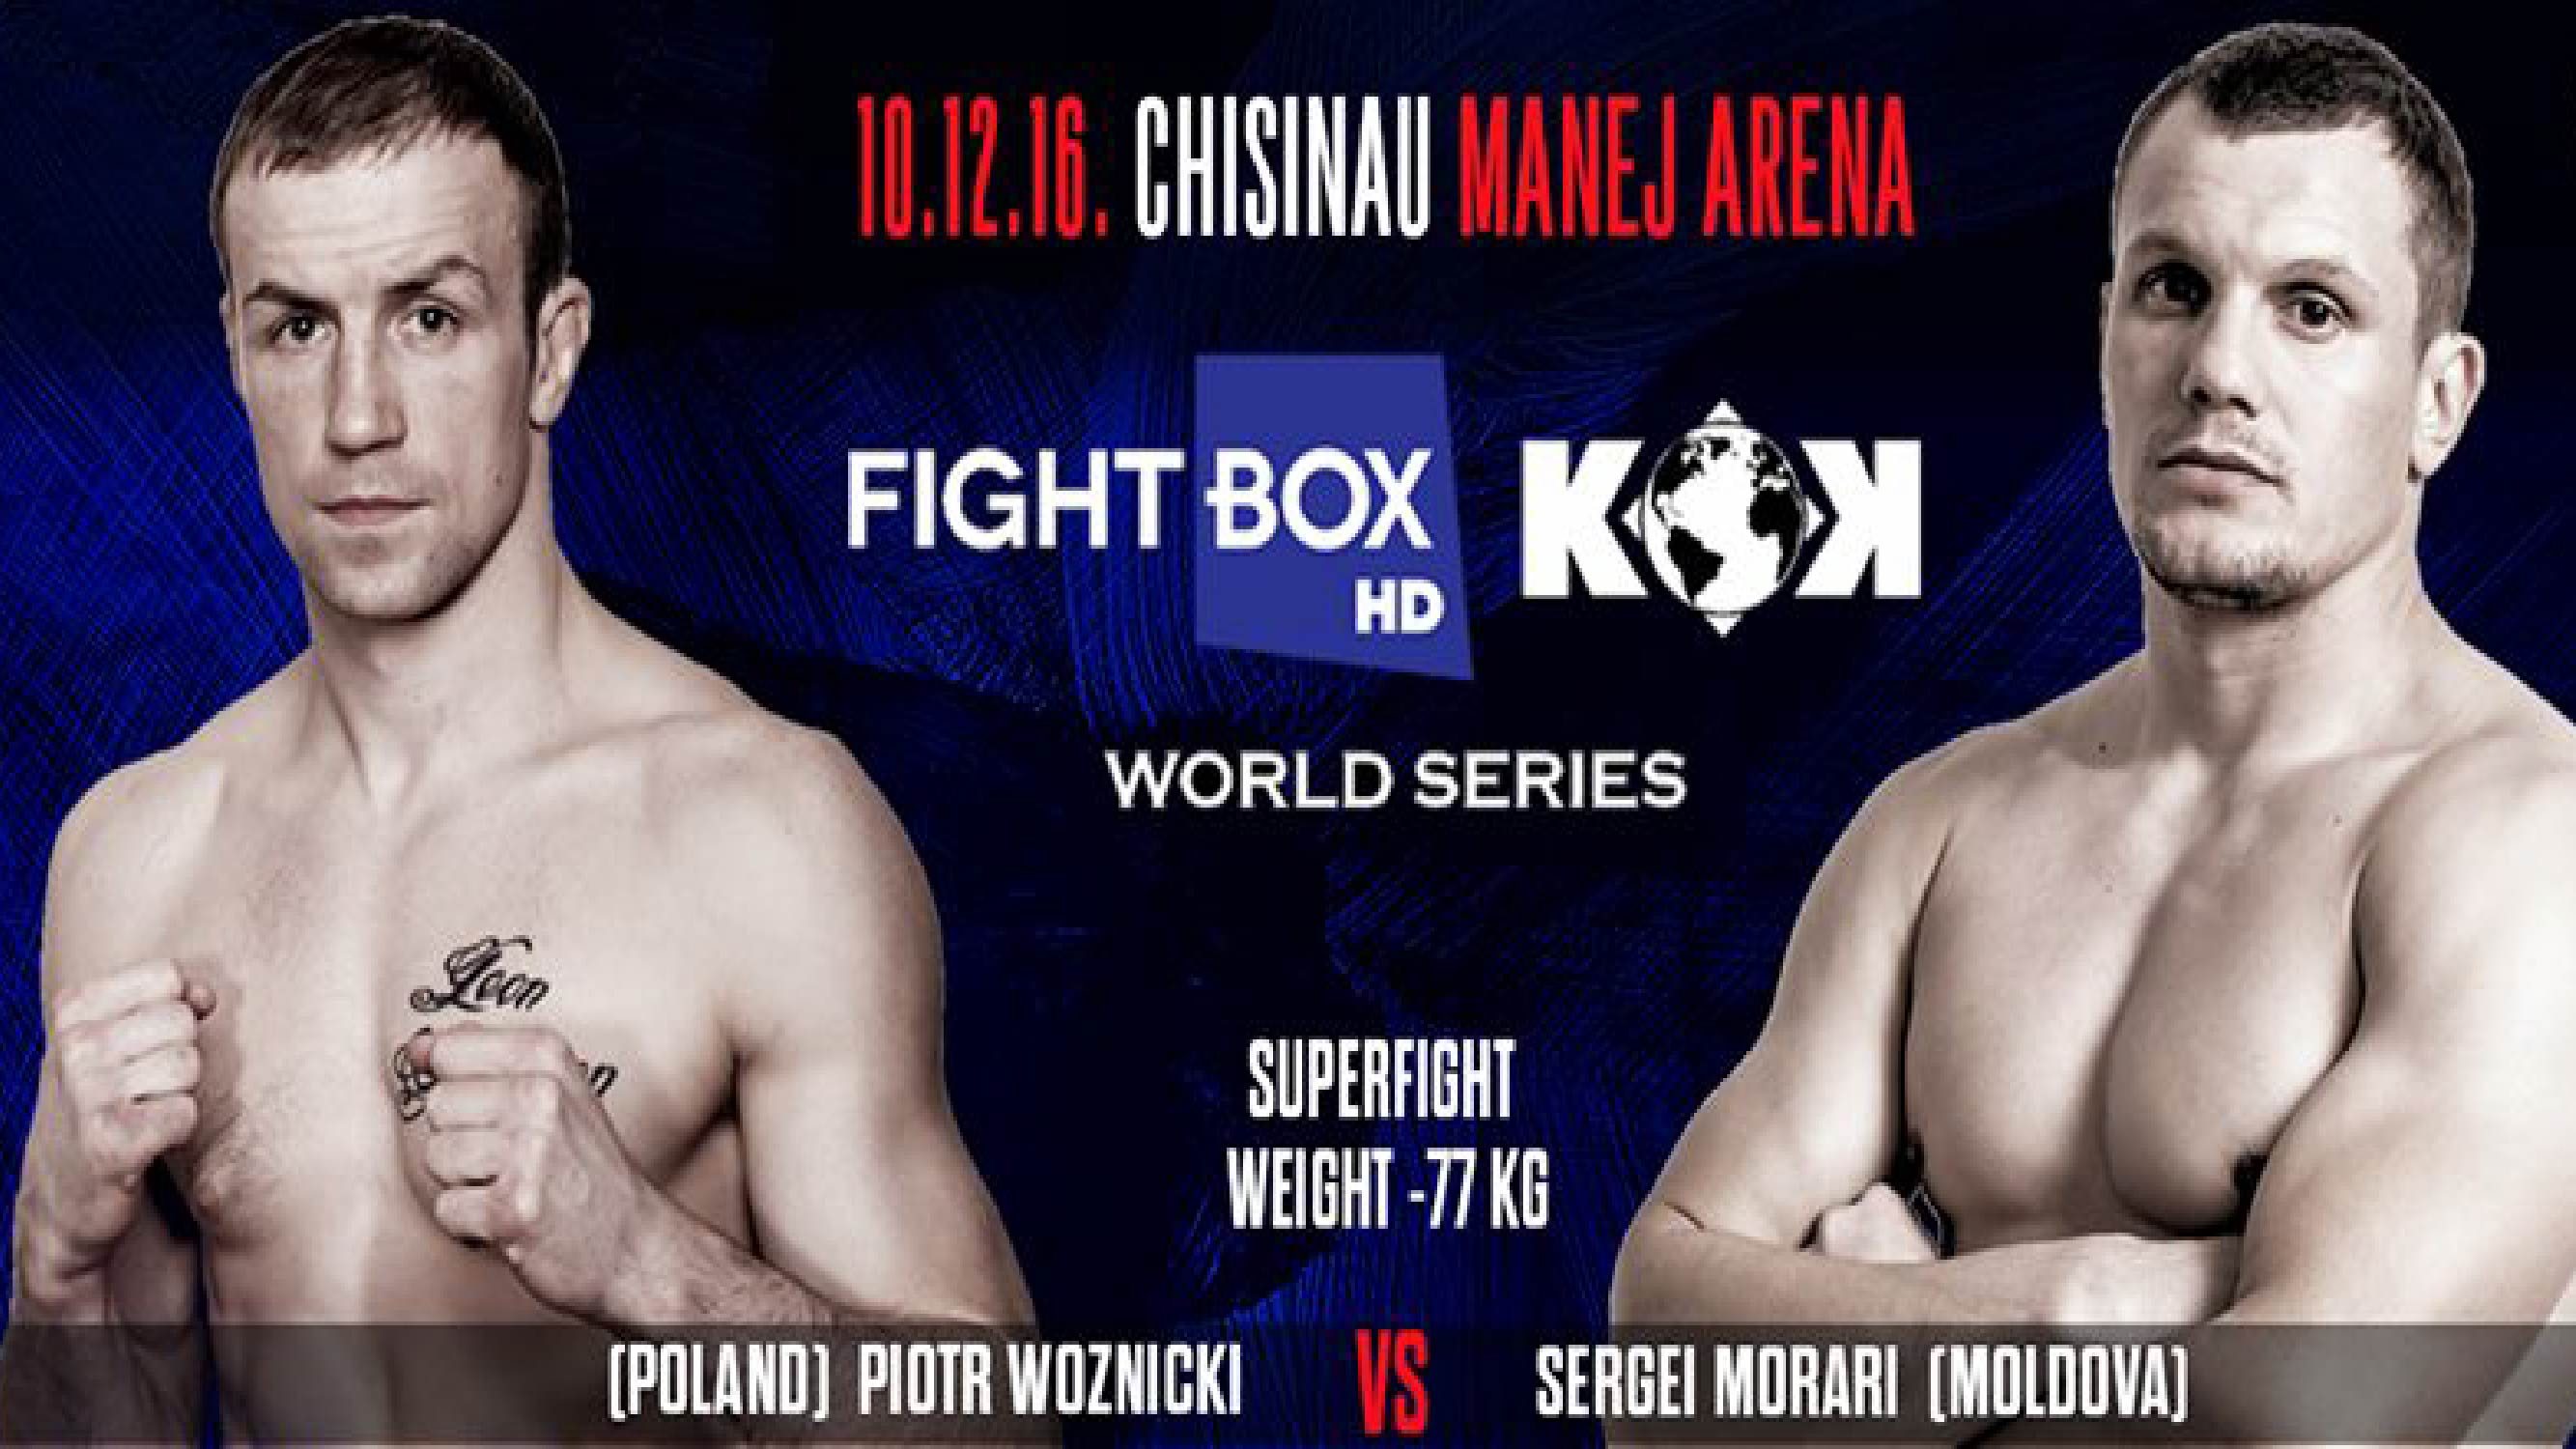 FightBox's KOK Hero's Series - LIVE on FightBox HD from Chisinau, Moldova on December 10th at 6:00pm CET